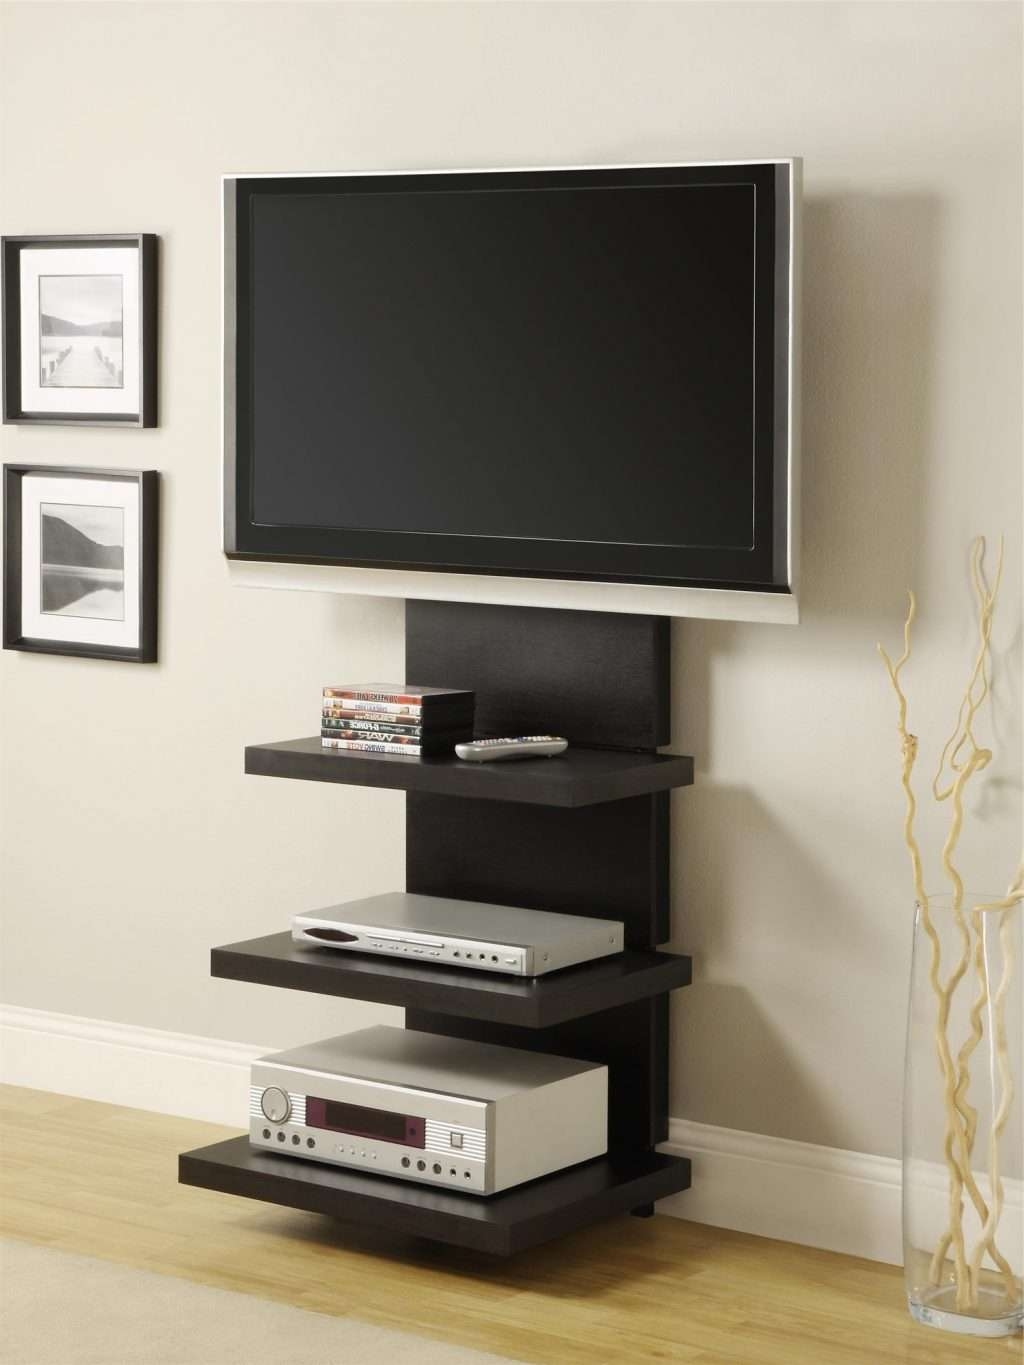 Living ~ Furniture Brown Yellows Wooden Tv Stands With Mounts And Within Yellow Tv Stands (View 5 of 15)